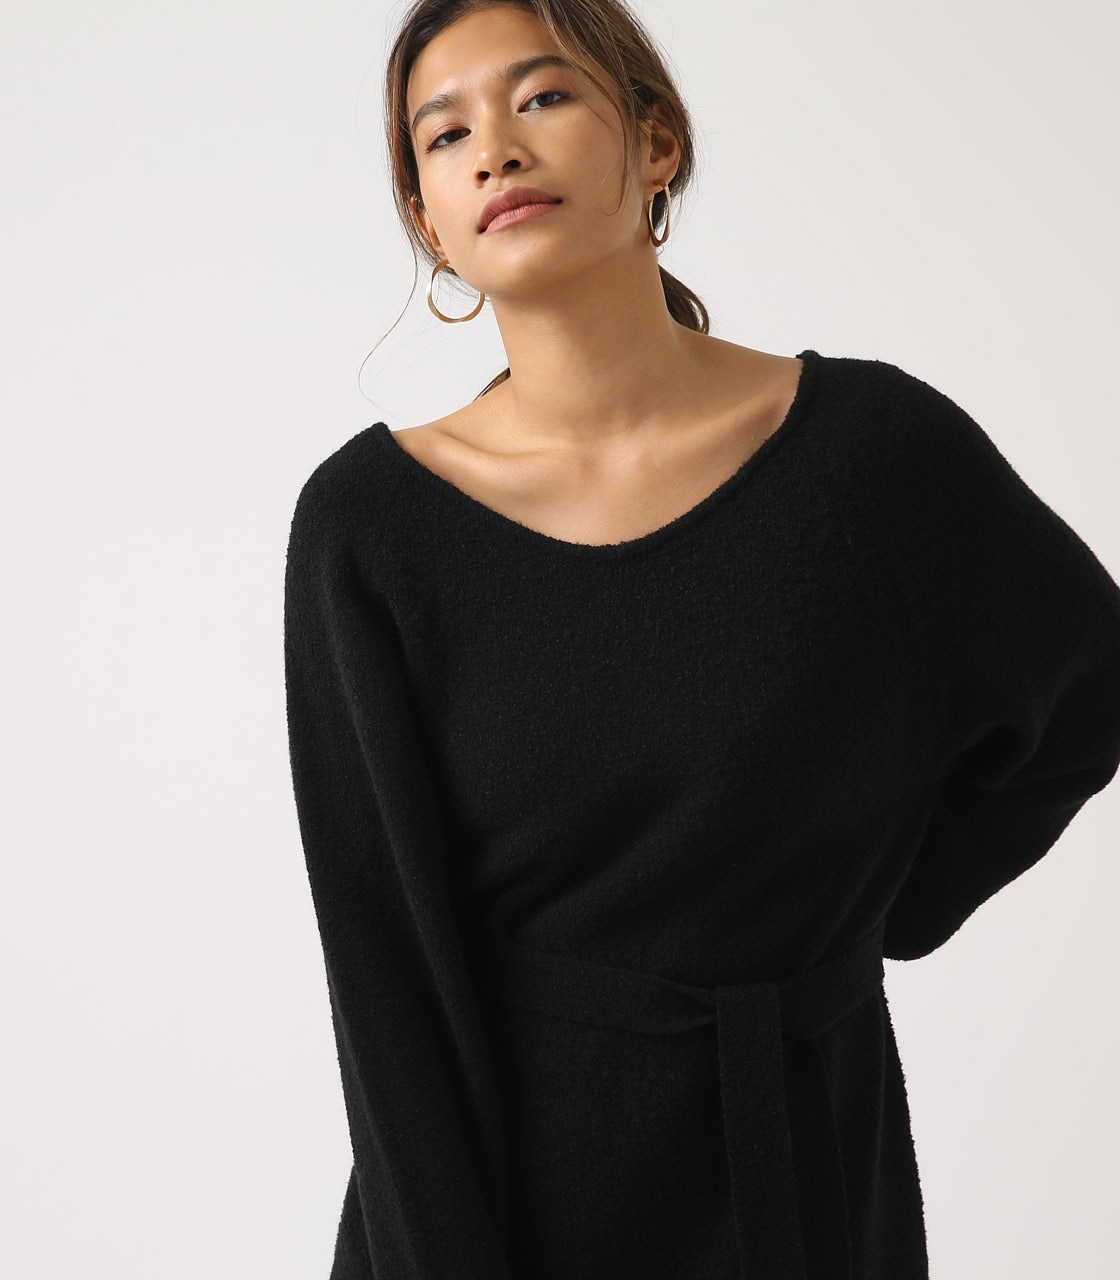 BELT SET V NECK KNIT TUNIC 詳細画像 BLK 3